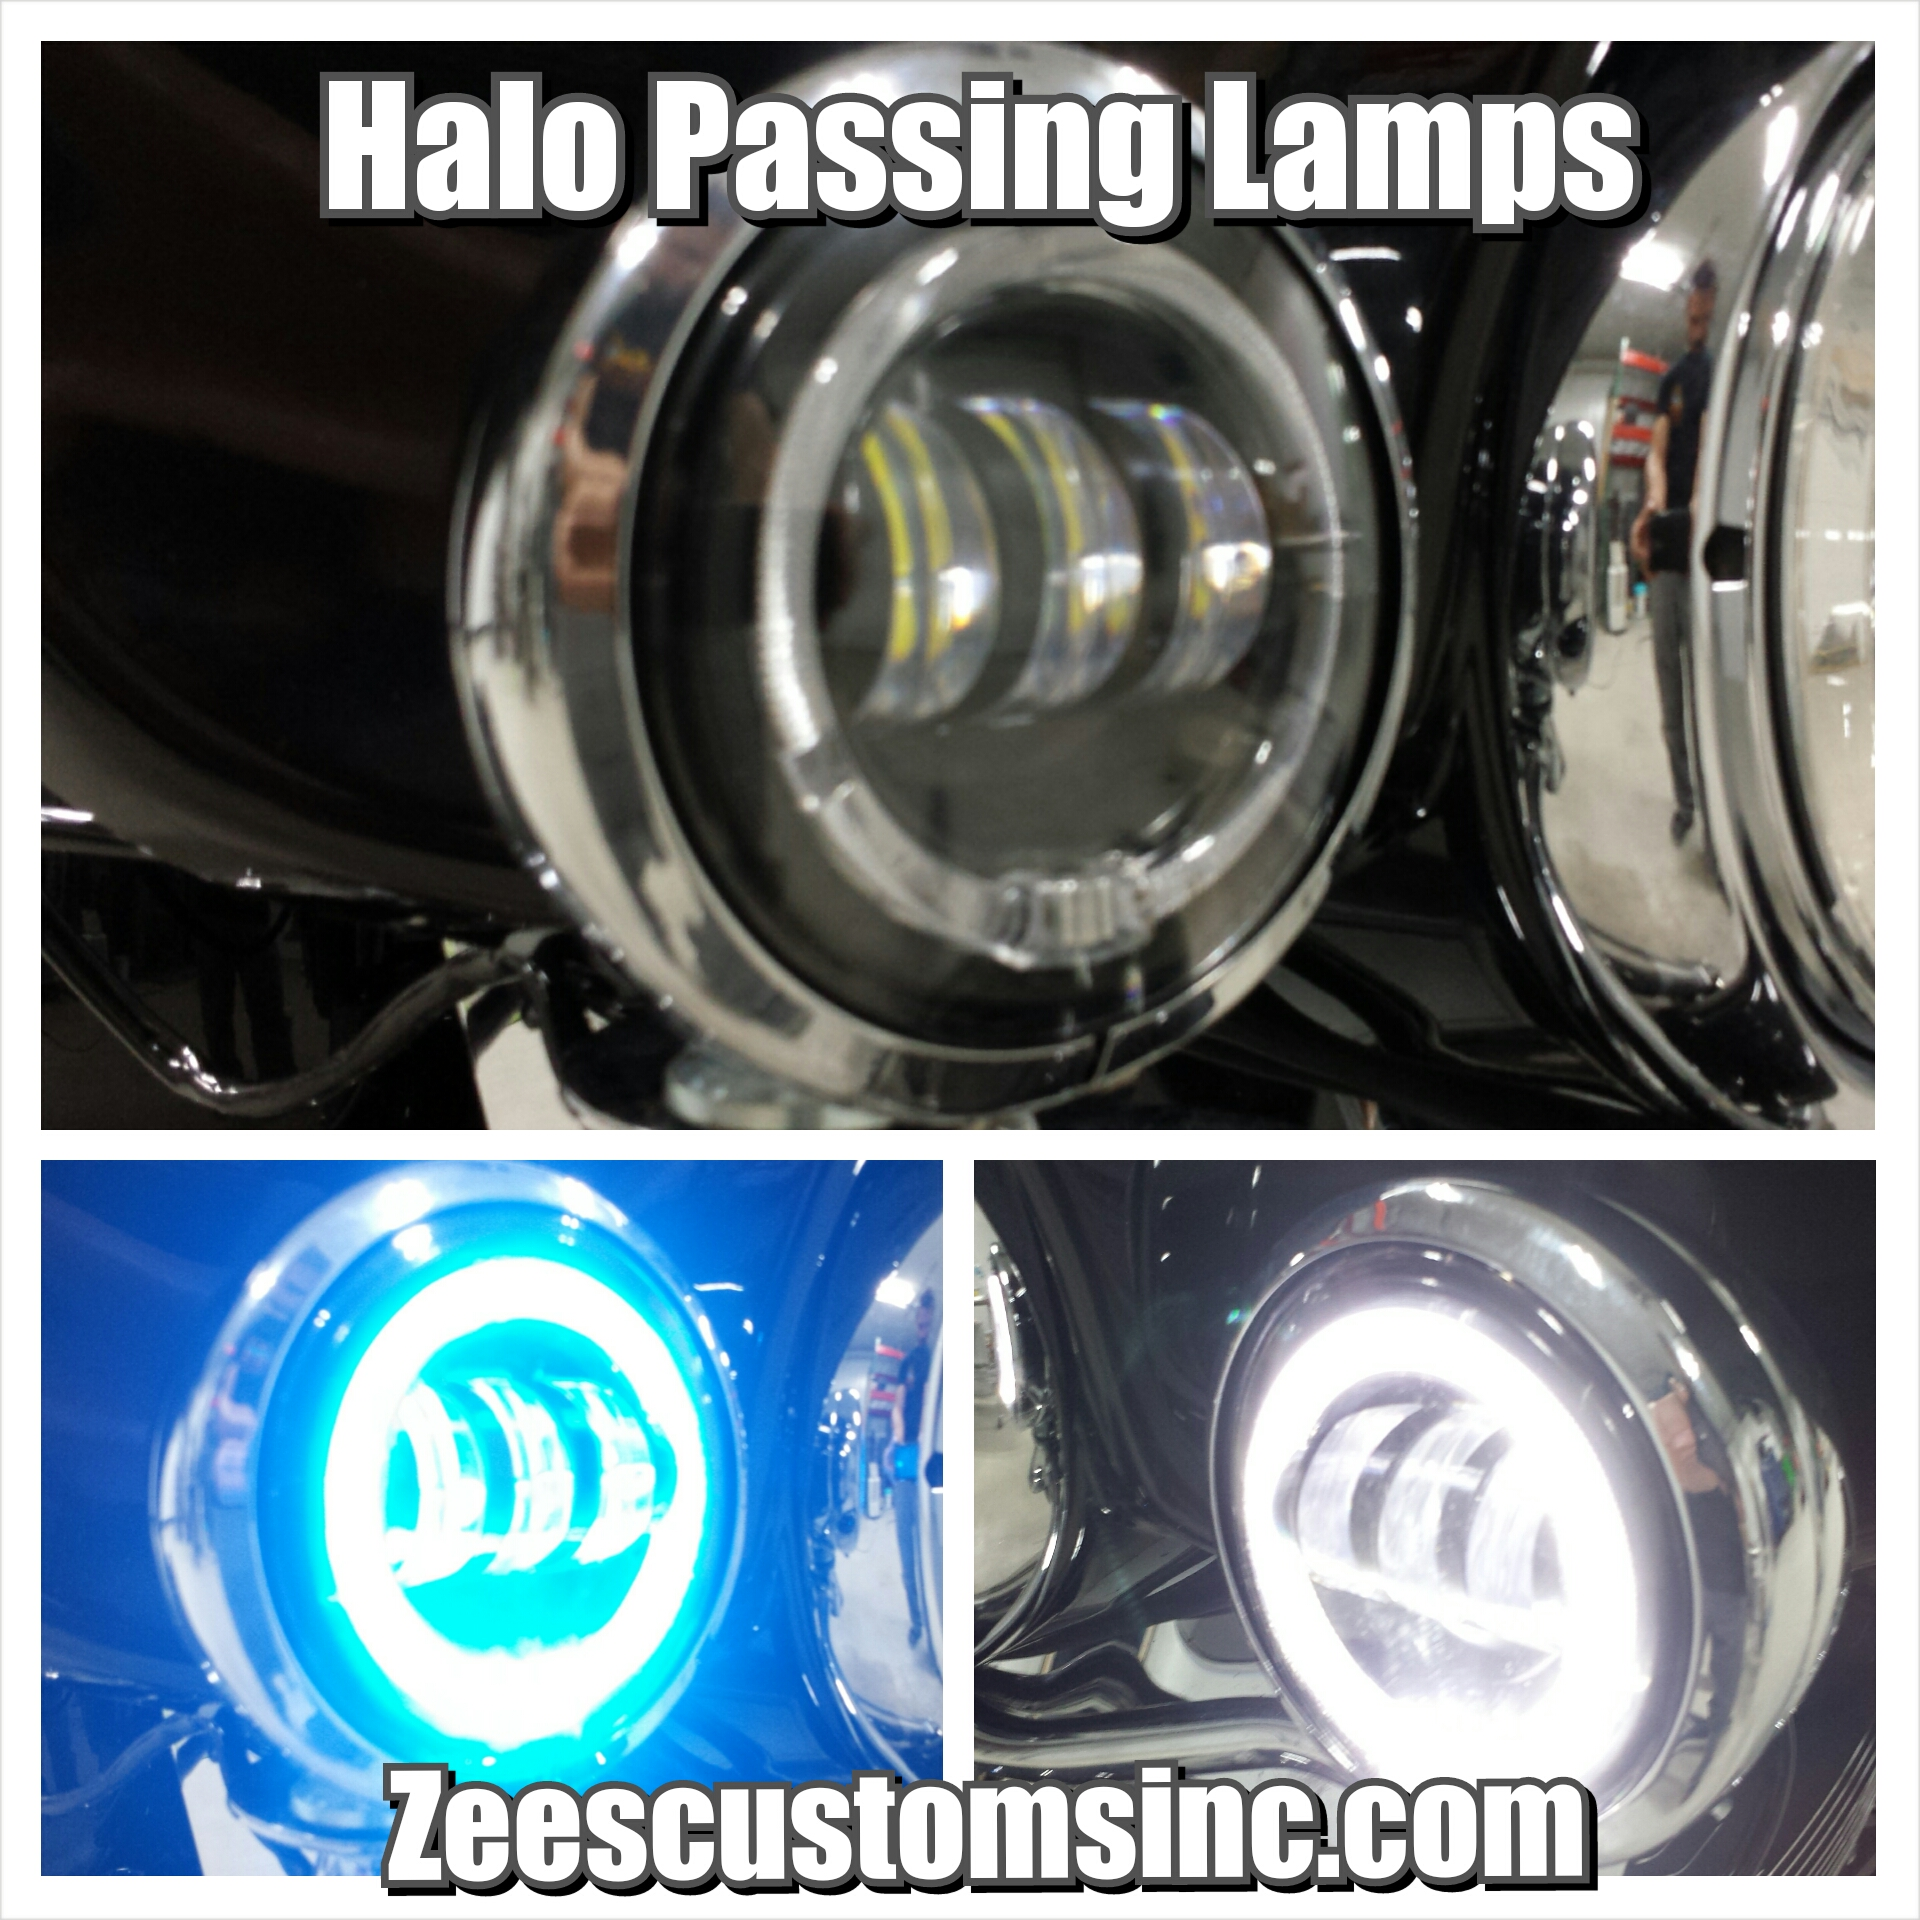 Halo Passing lamps